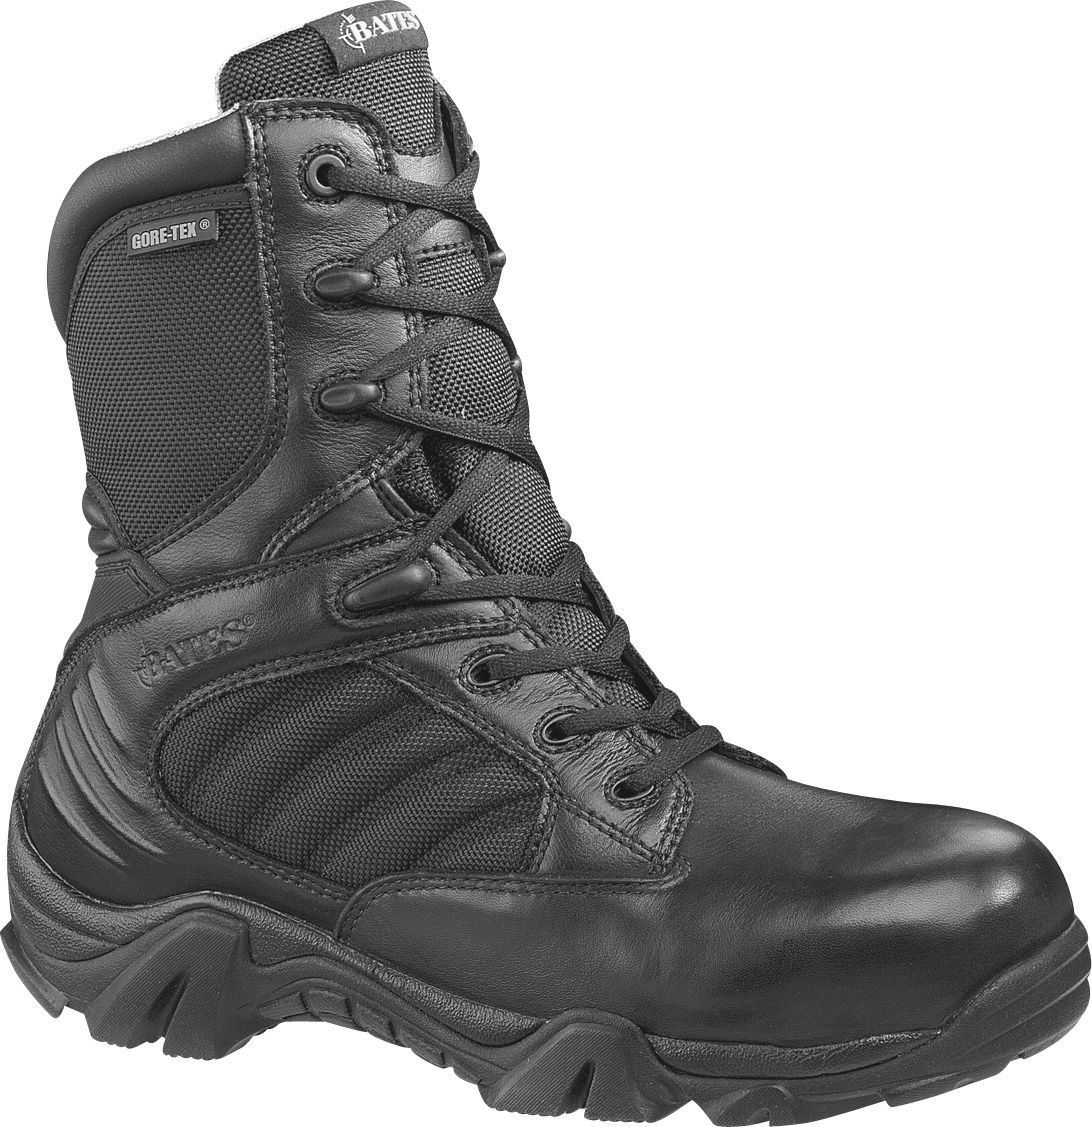 Bates Men's GX-8 8'' GORE-TEX Composite Toe Side Zip Tactical Boots. 0:00.  0:00 / 0:00. noImageFound ???